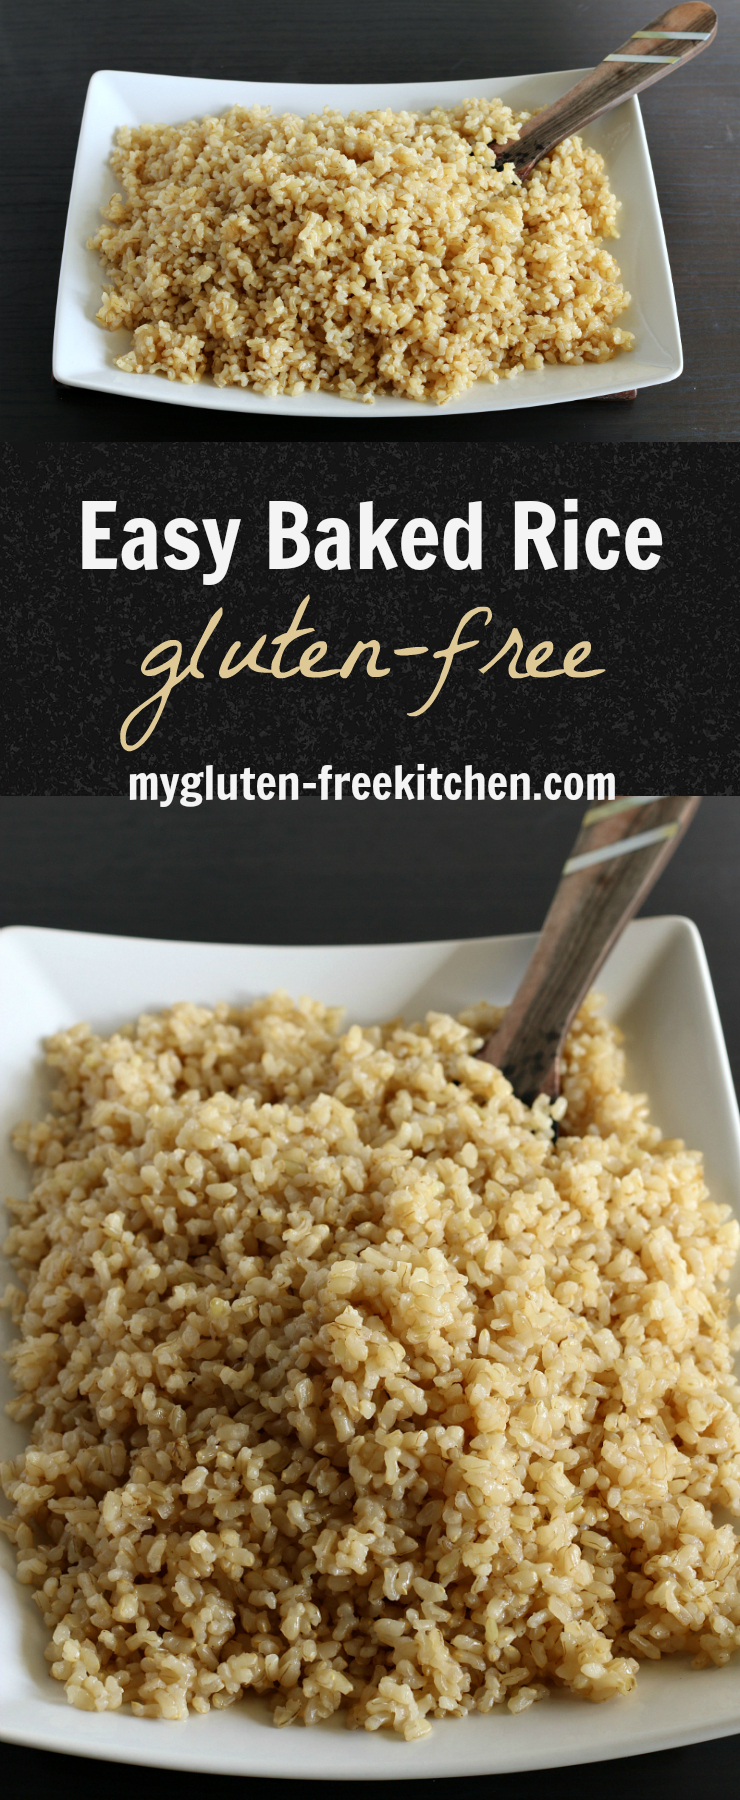 Easy Baked Rice - Two secret ingredients make this easy recipe extra delicious! This is a staple at our house!